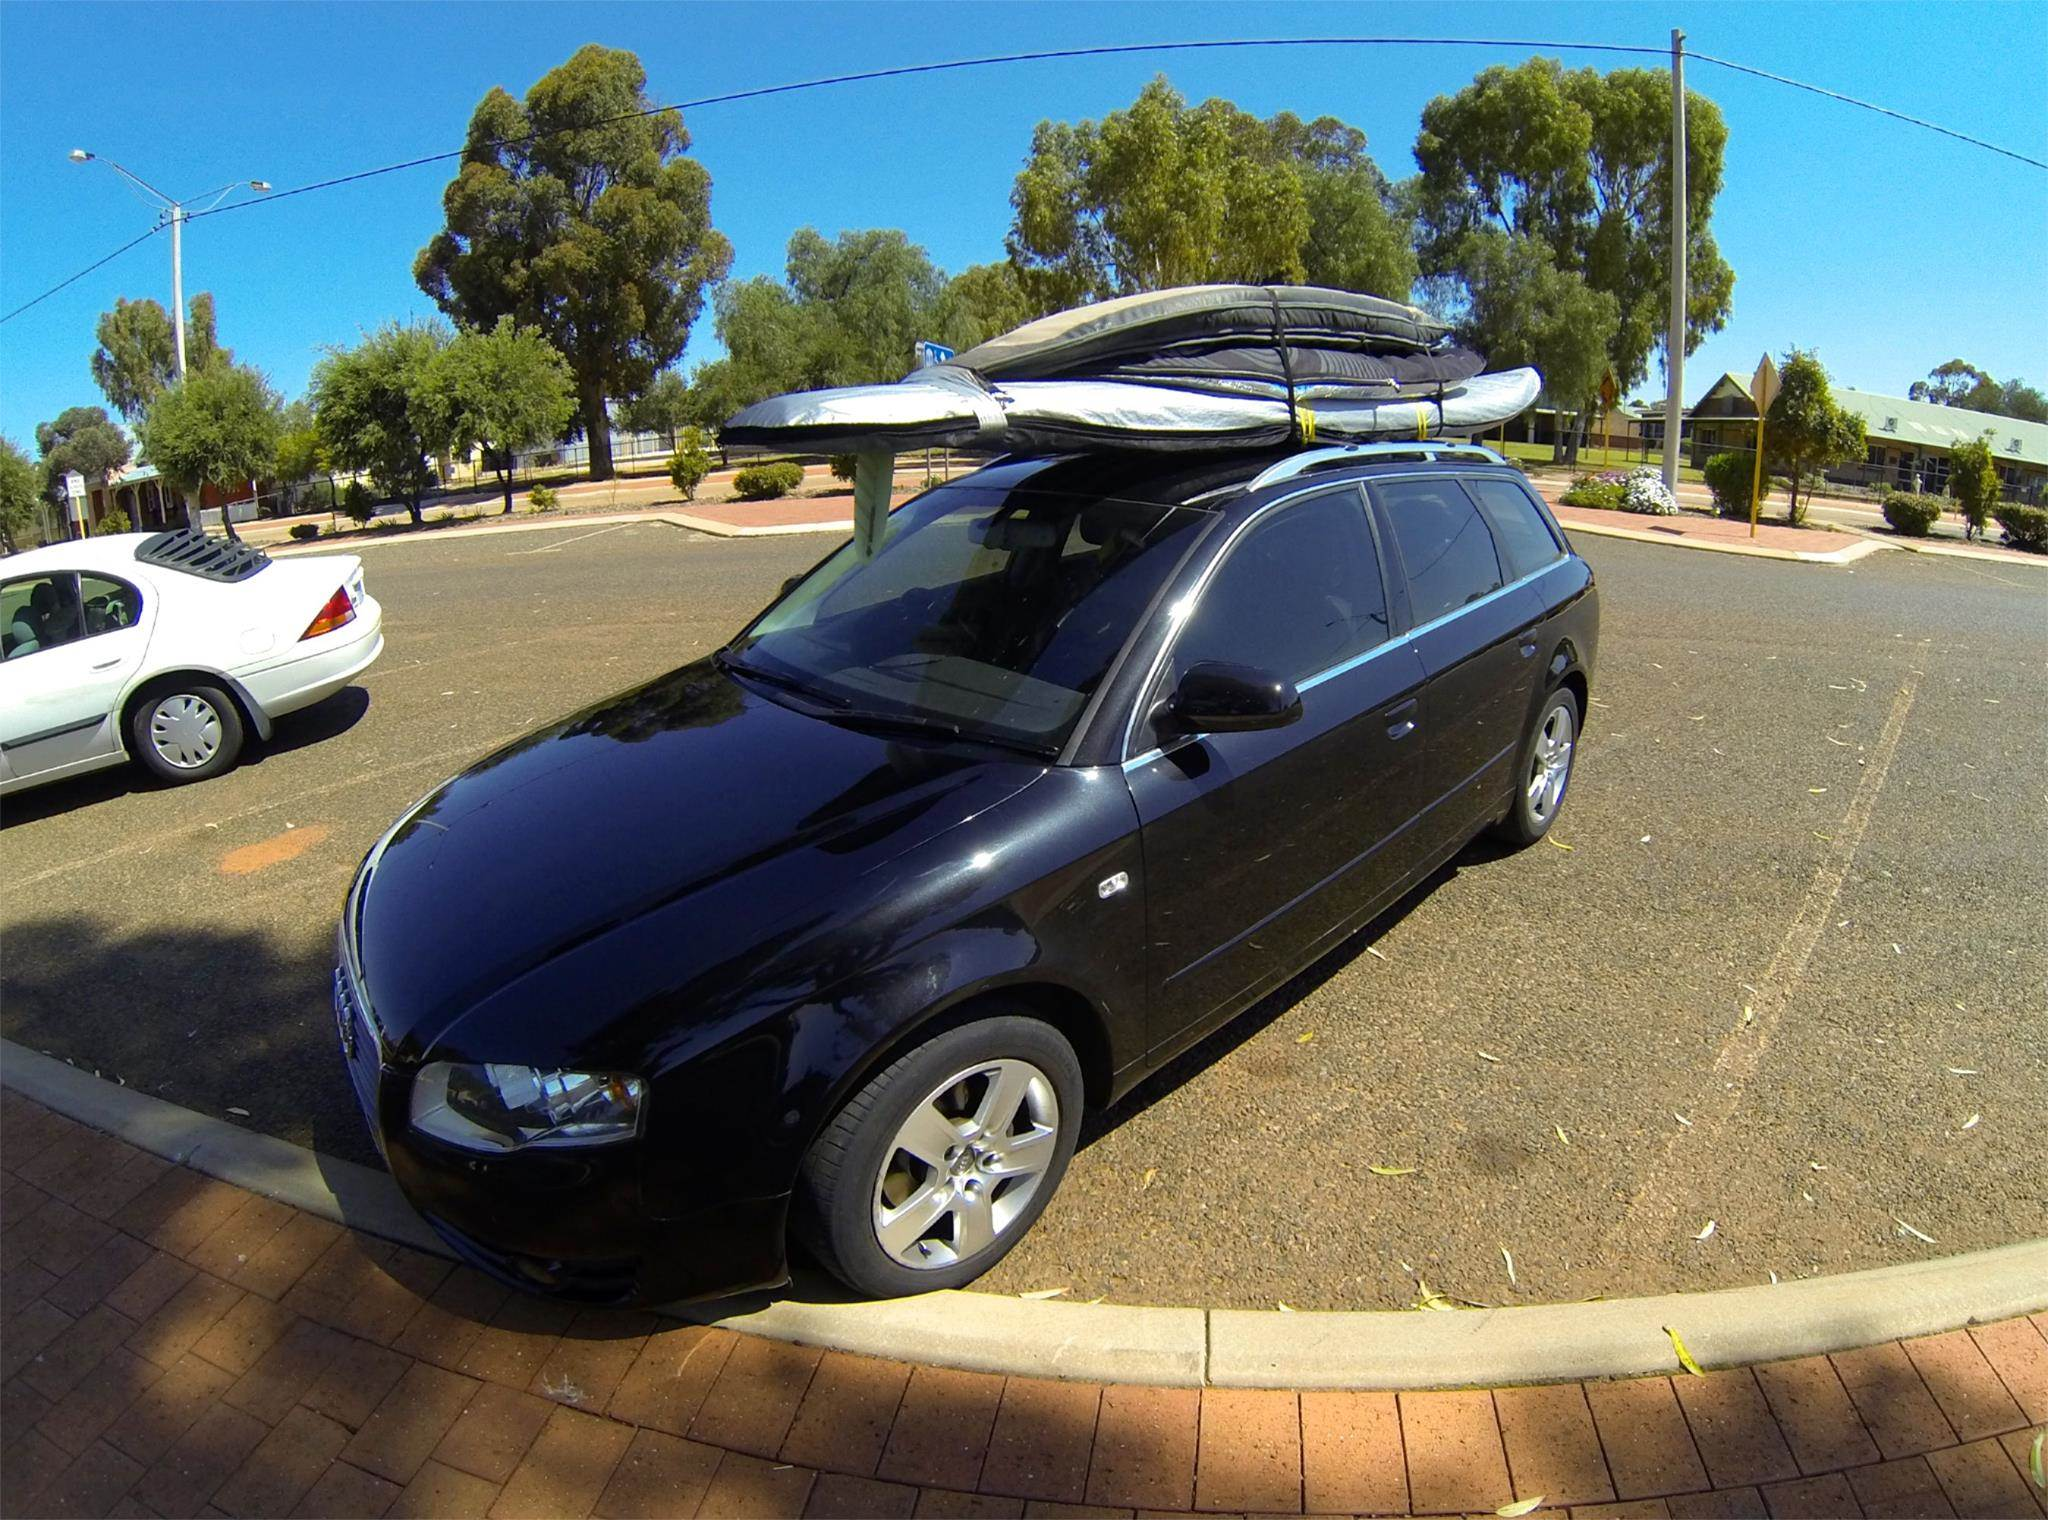 car outdoorplay board spec paddle thule stand bike proride roof com rack up